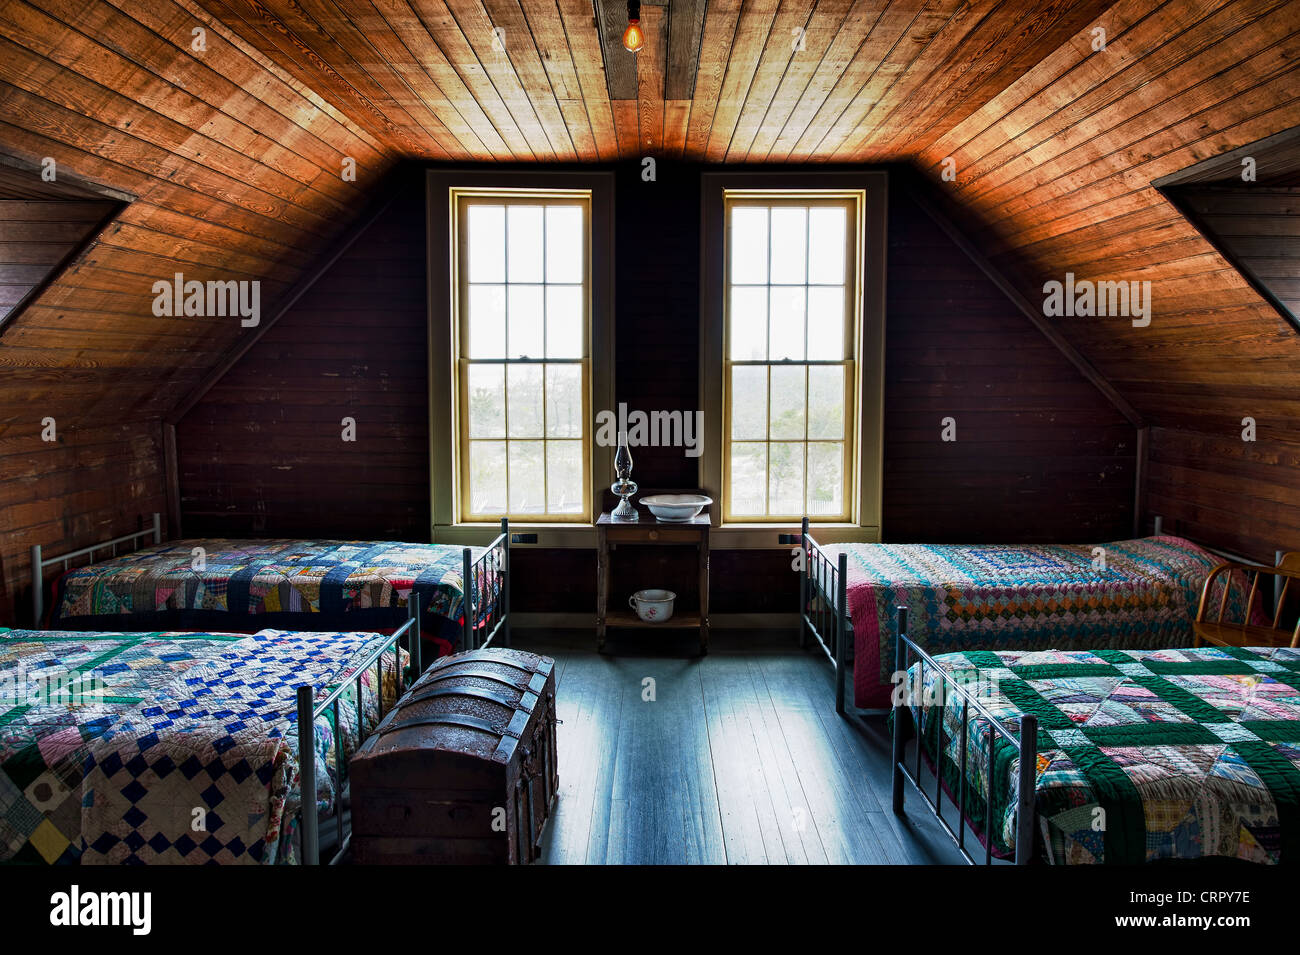 Bunk room, Indian River Life Saving Station Museum, Rehoboth Beach, Delaware, USA - Stock Image